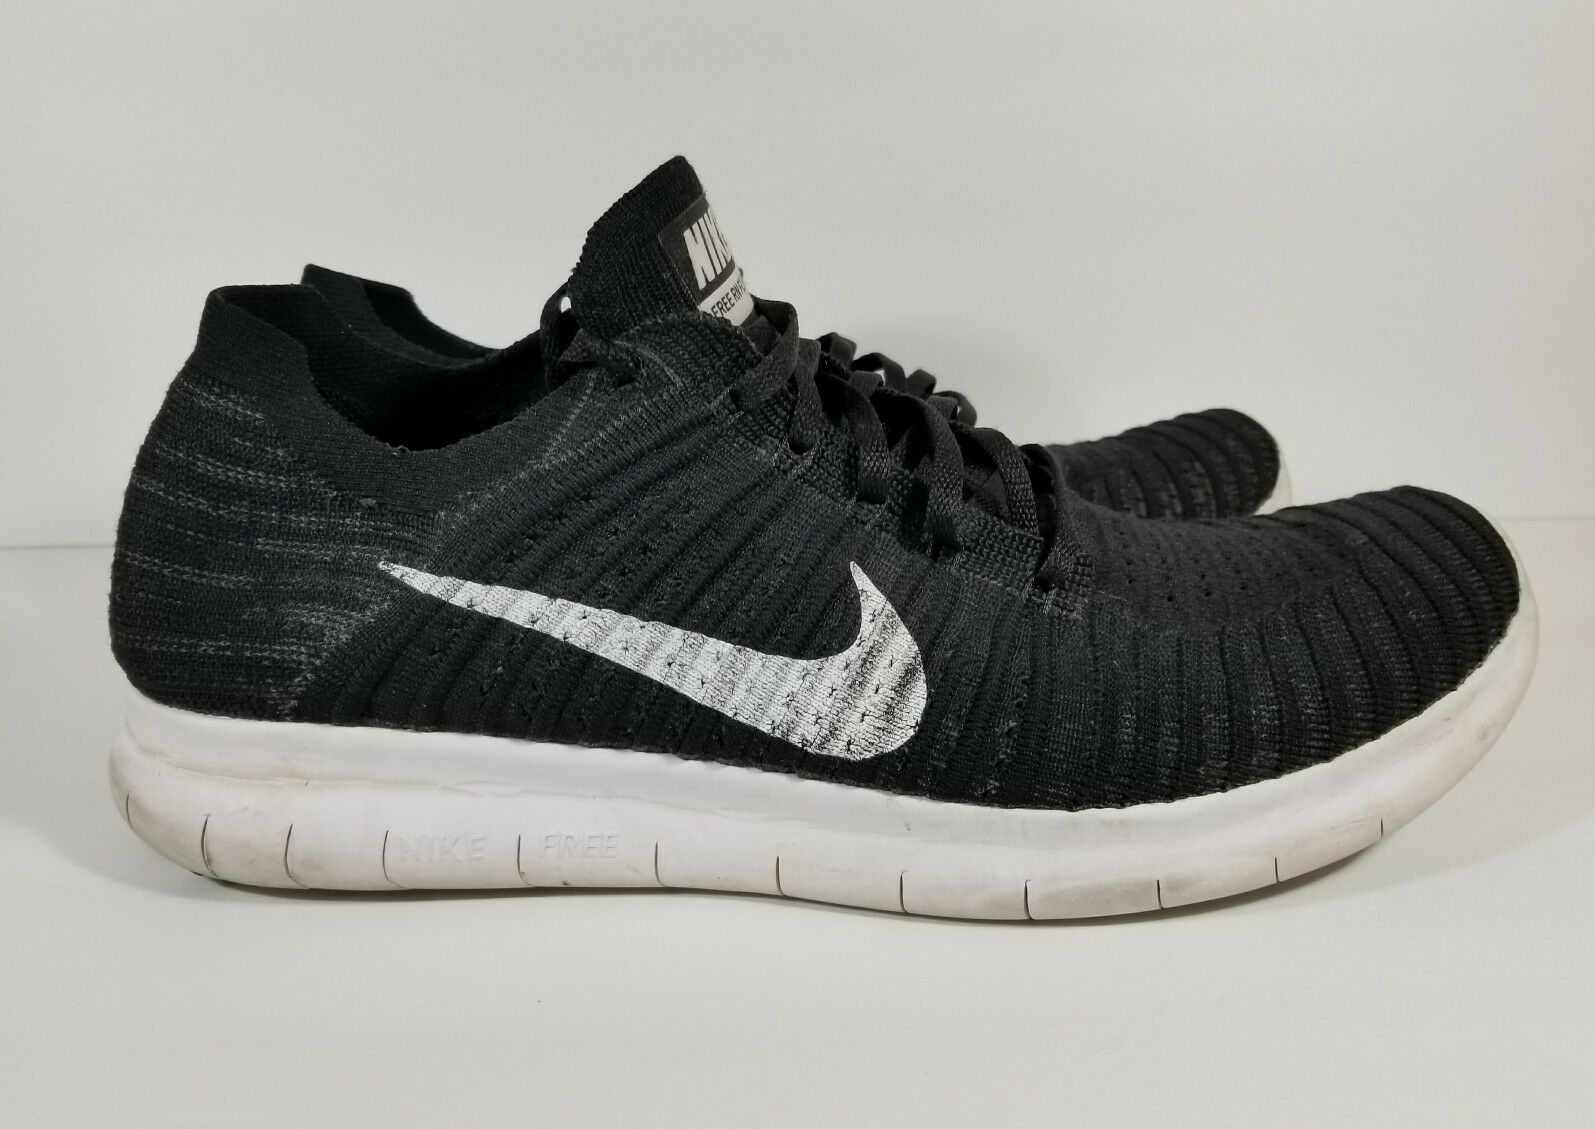 New Nike Free Rn Flyknit Men's Running Training Shoes Black/White Comfortable Cheap women's shoes women's shoes